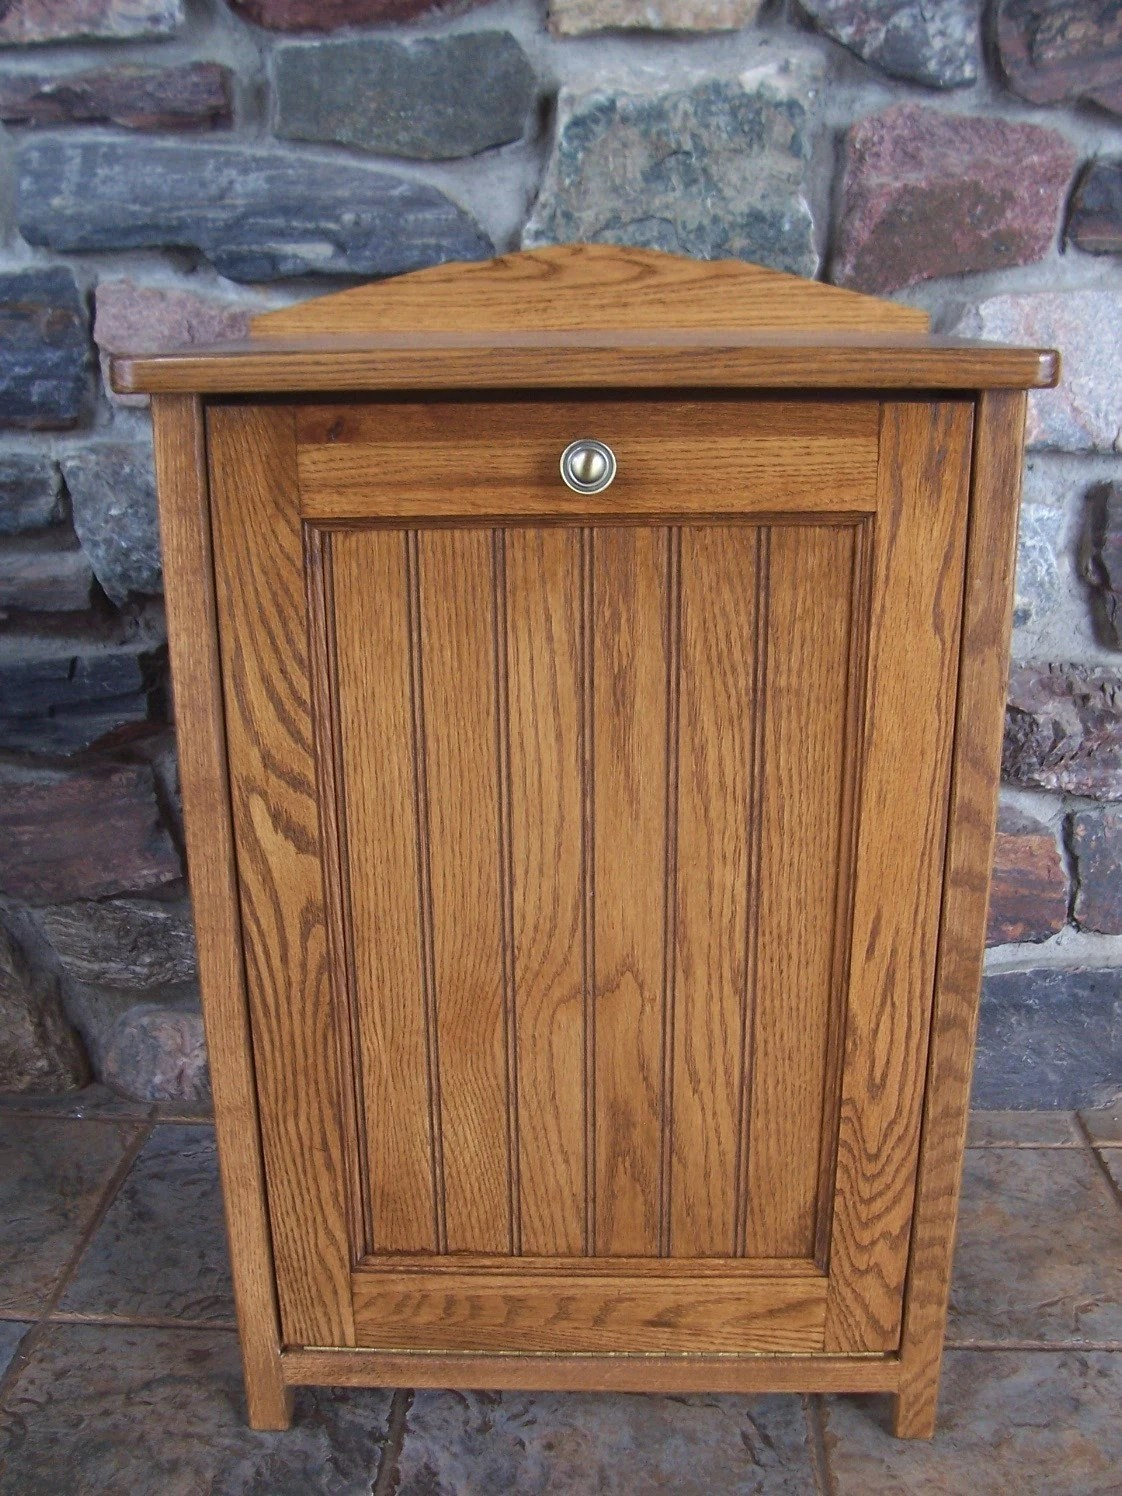 New Oak Wood Kitchen Trash Bin Tilt Out Door by woodupnorth